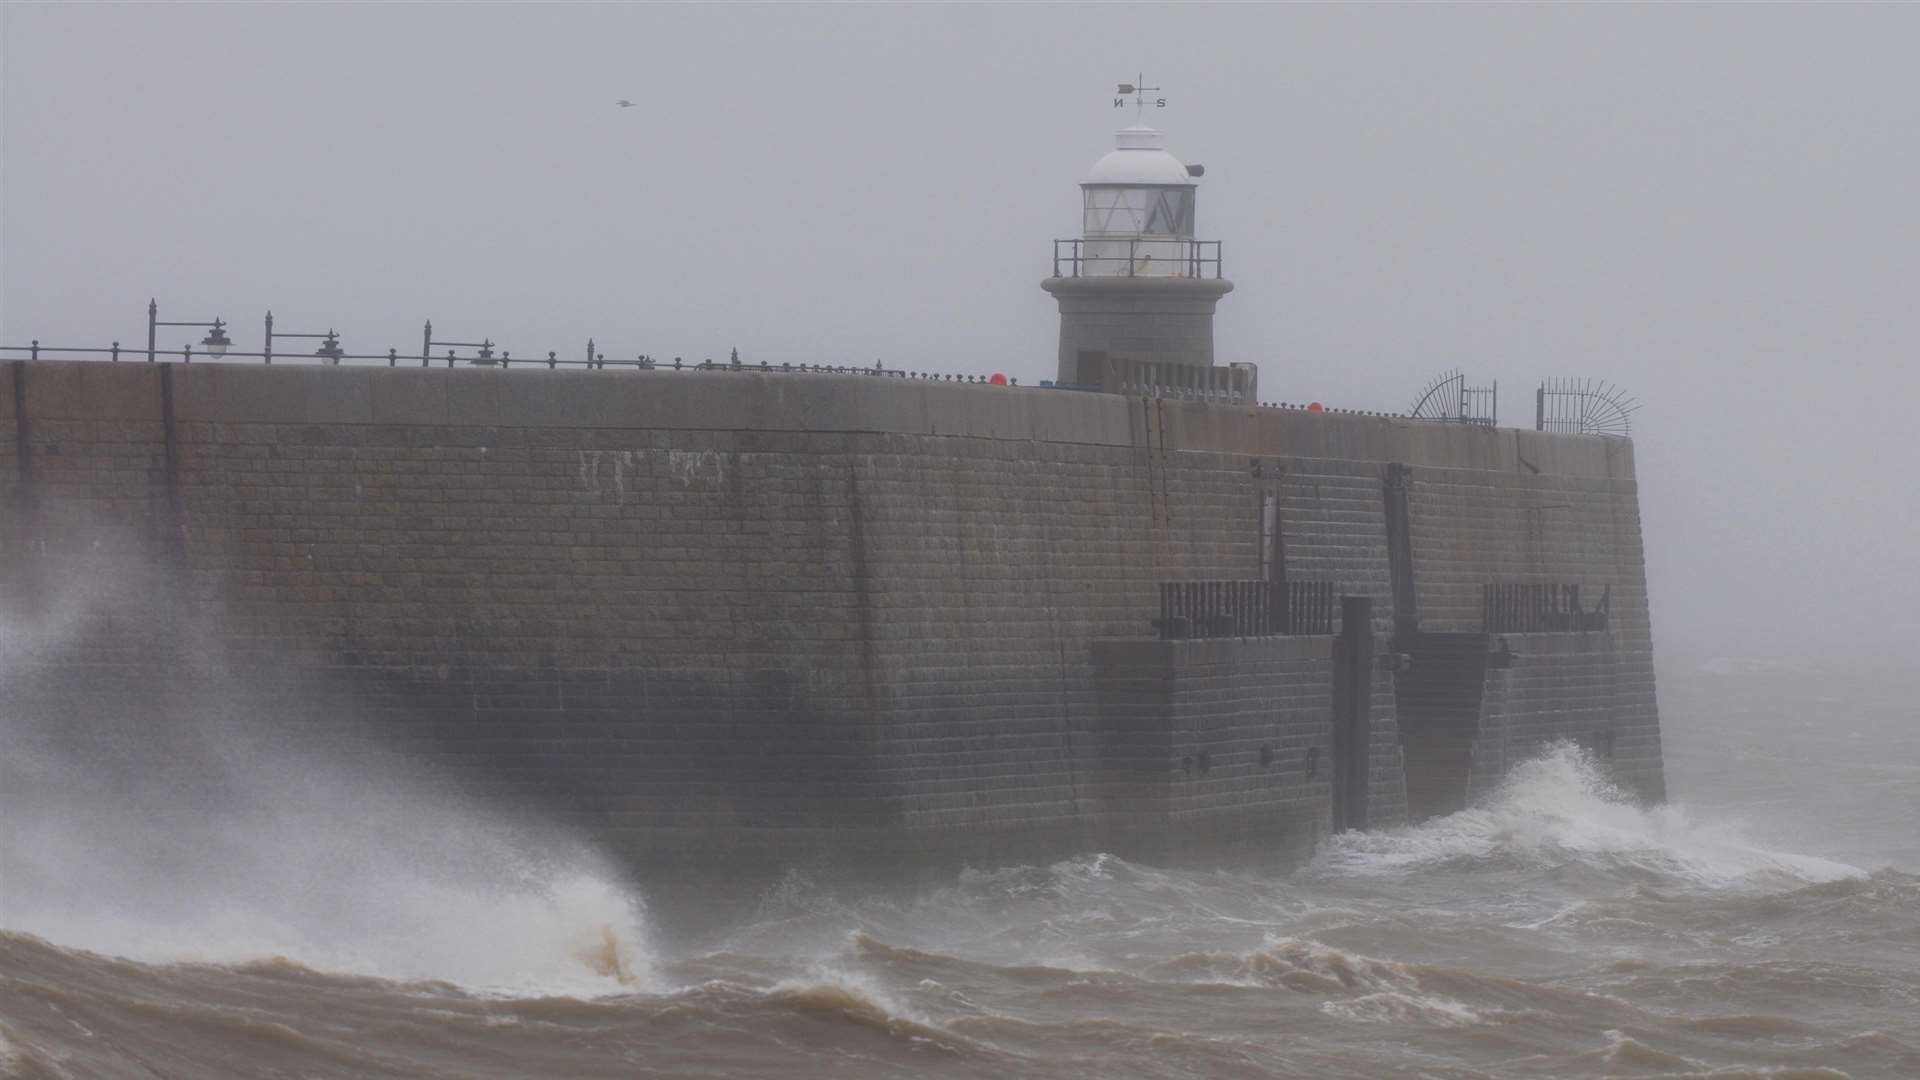 Strong winds and large waves at Folkestone harbour. Library image.